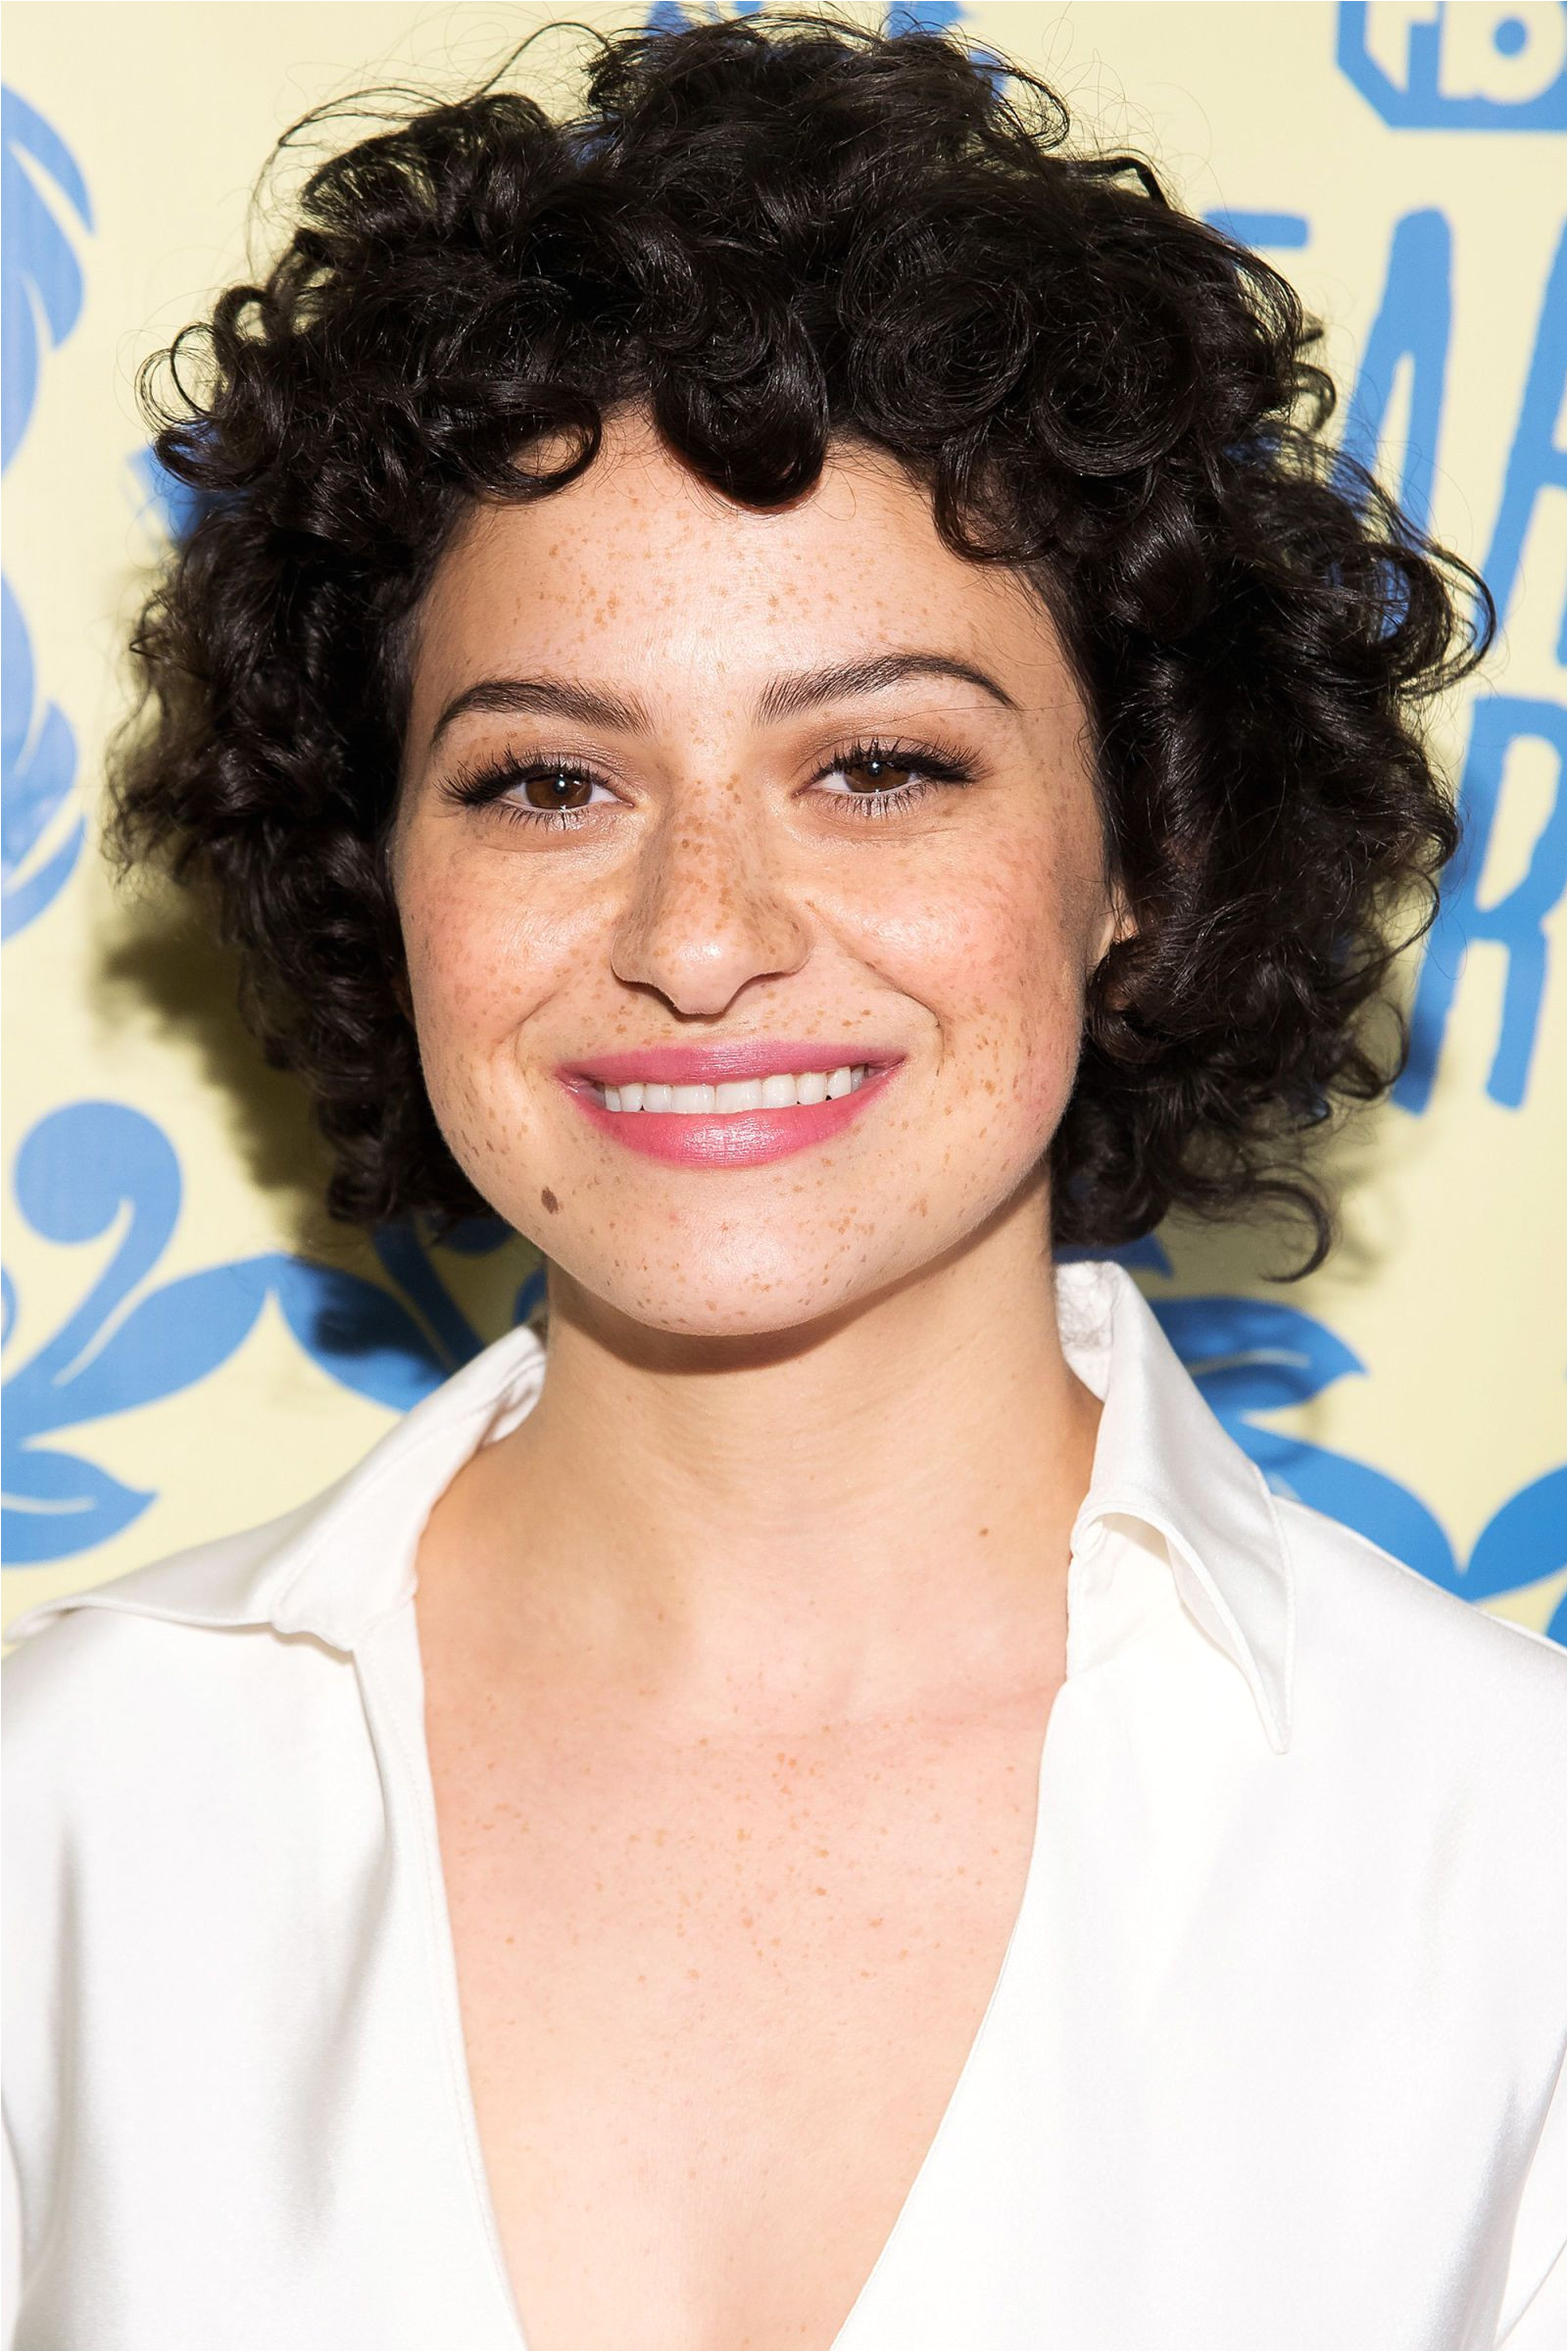 Formal Hairstyles Short Curly Hair 33 Magnificent Ways to Wear Curly Hair Beauty Tips Ideas